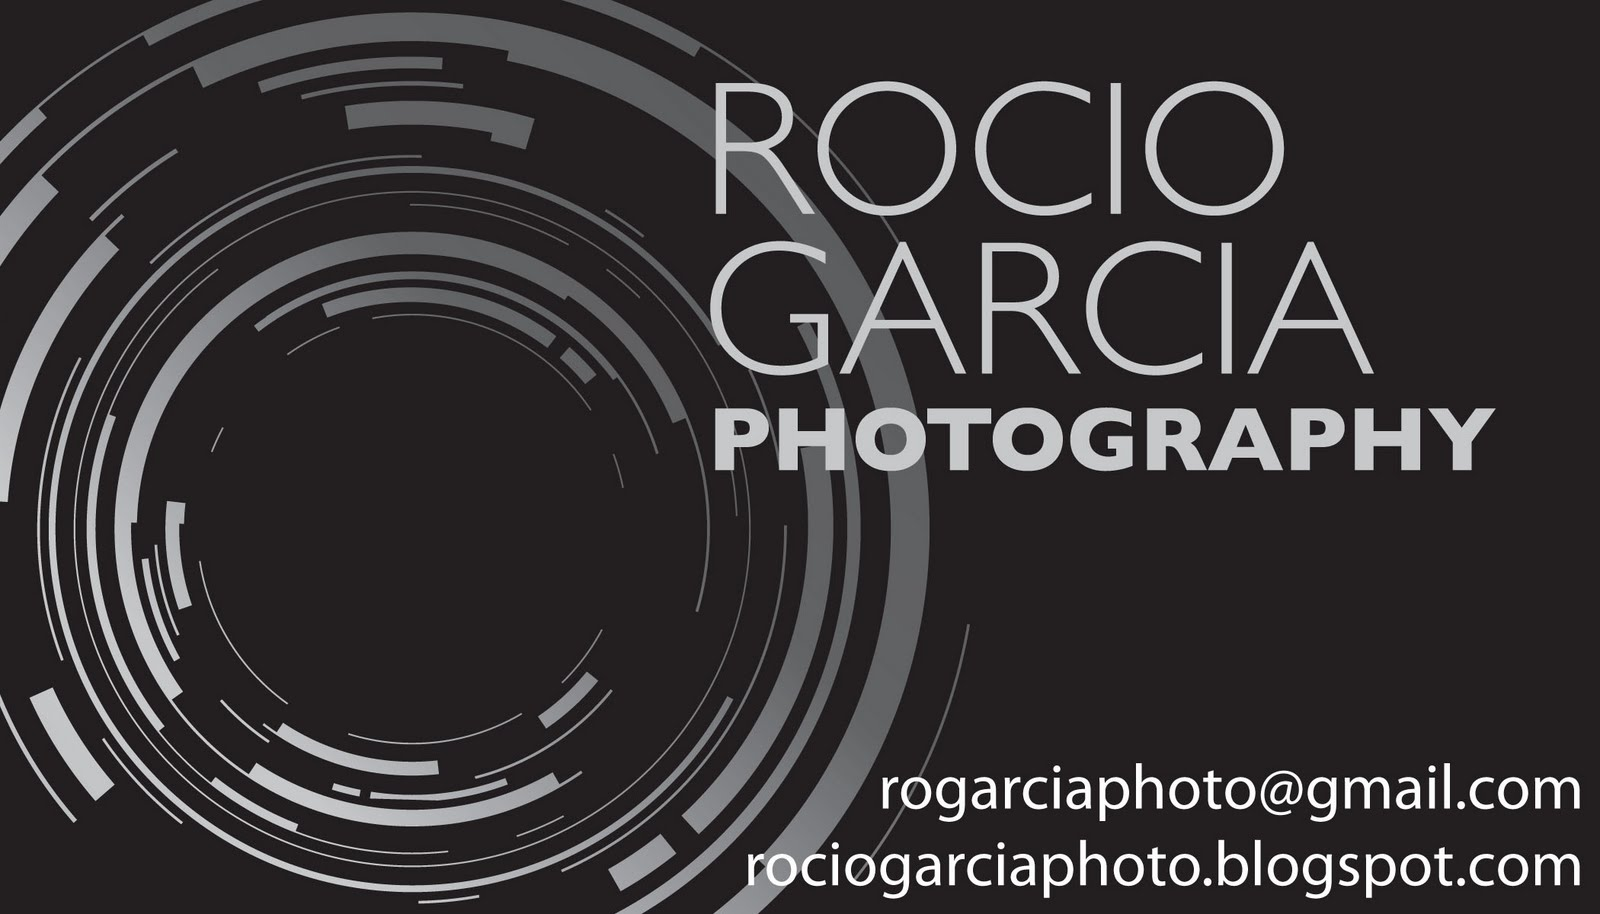 Rocio garcia photography bakersfield photographer for Business cards bakersfield